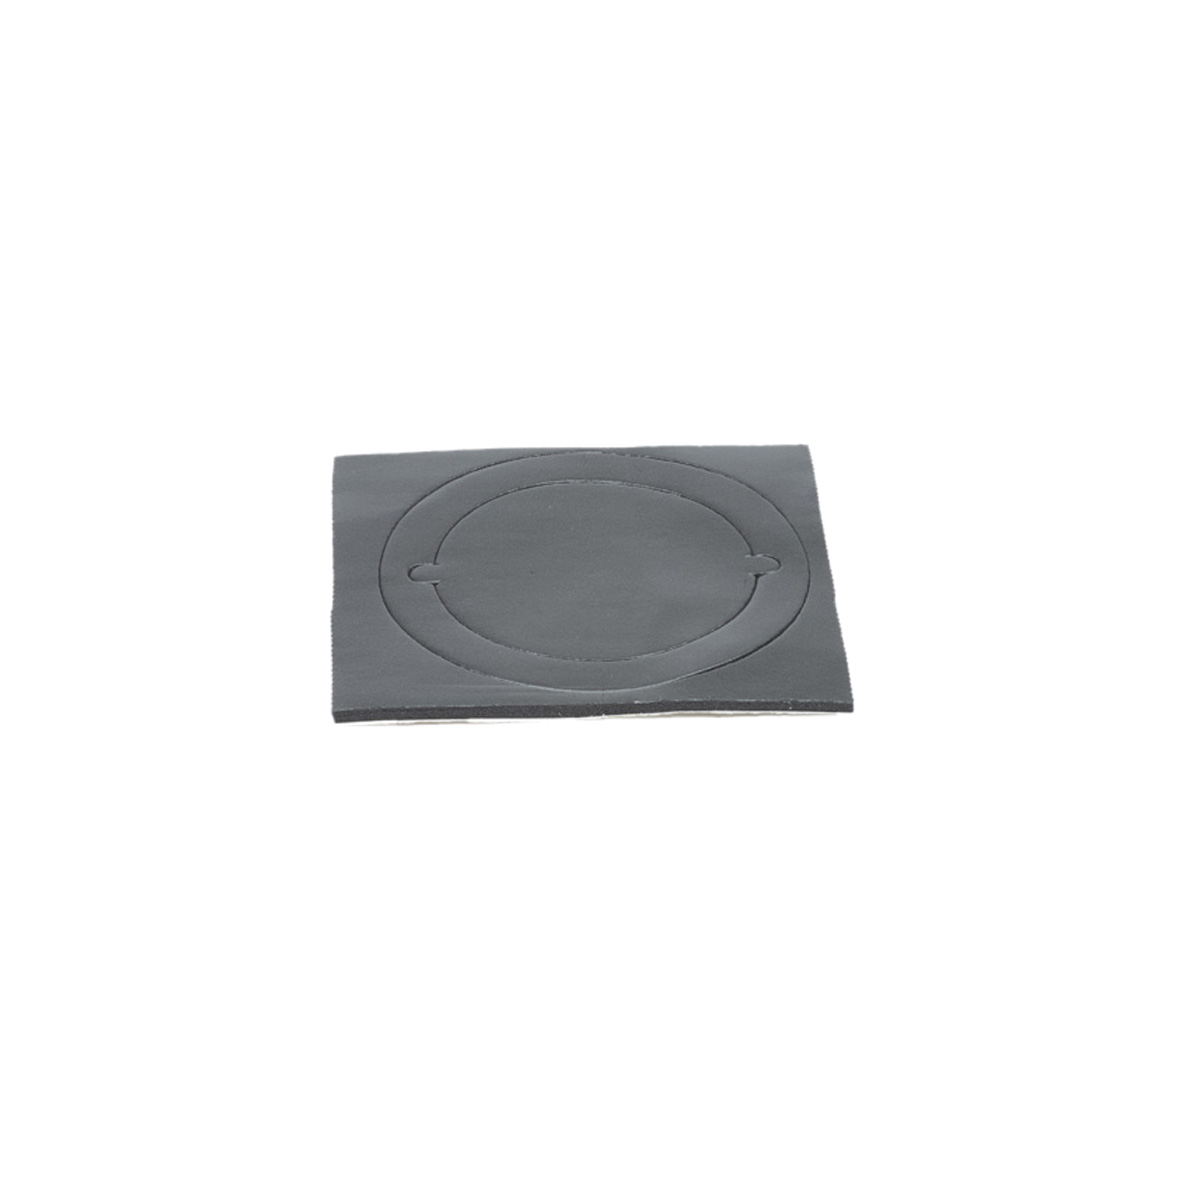 "Round Supply Outlet Gasket, 2"", 1pk"